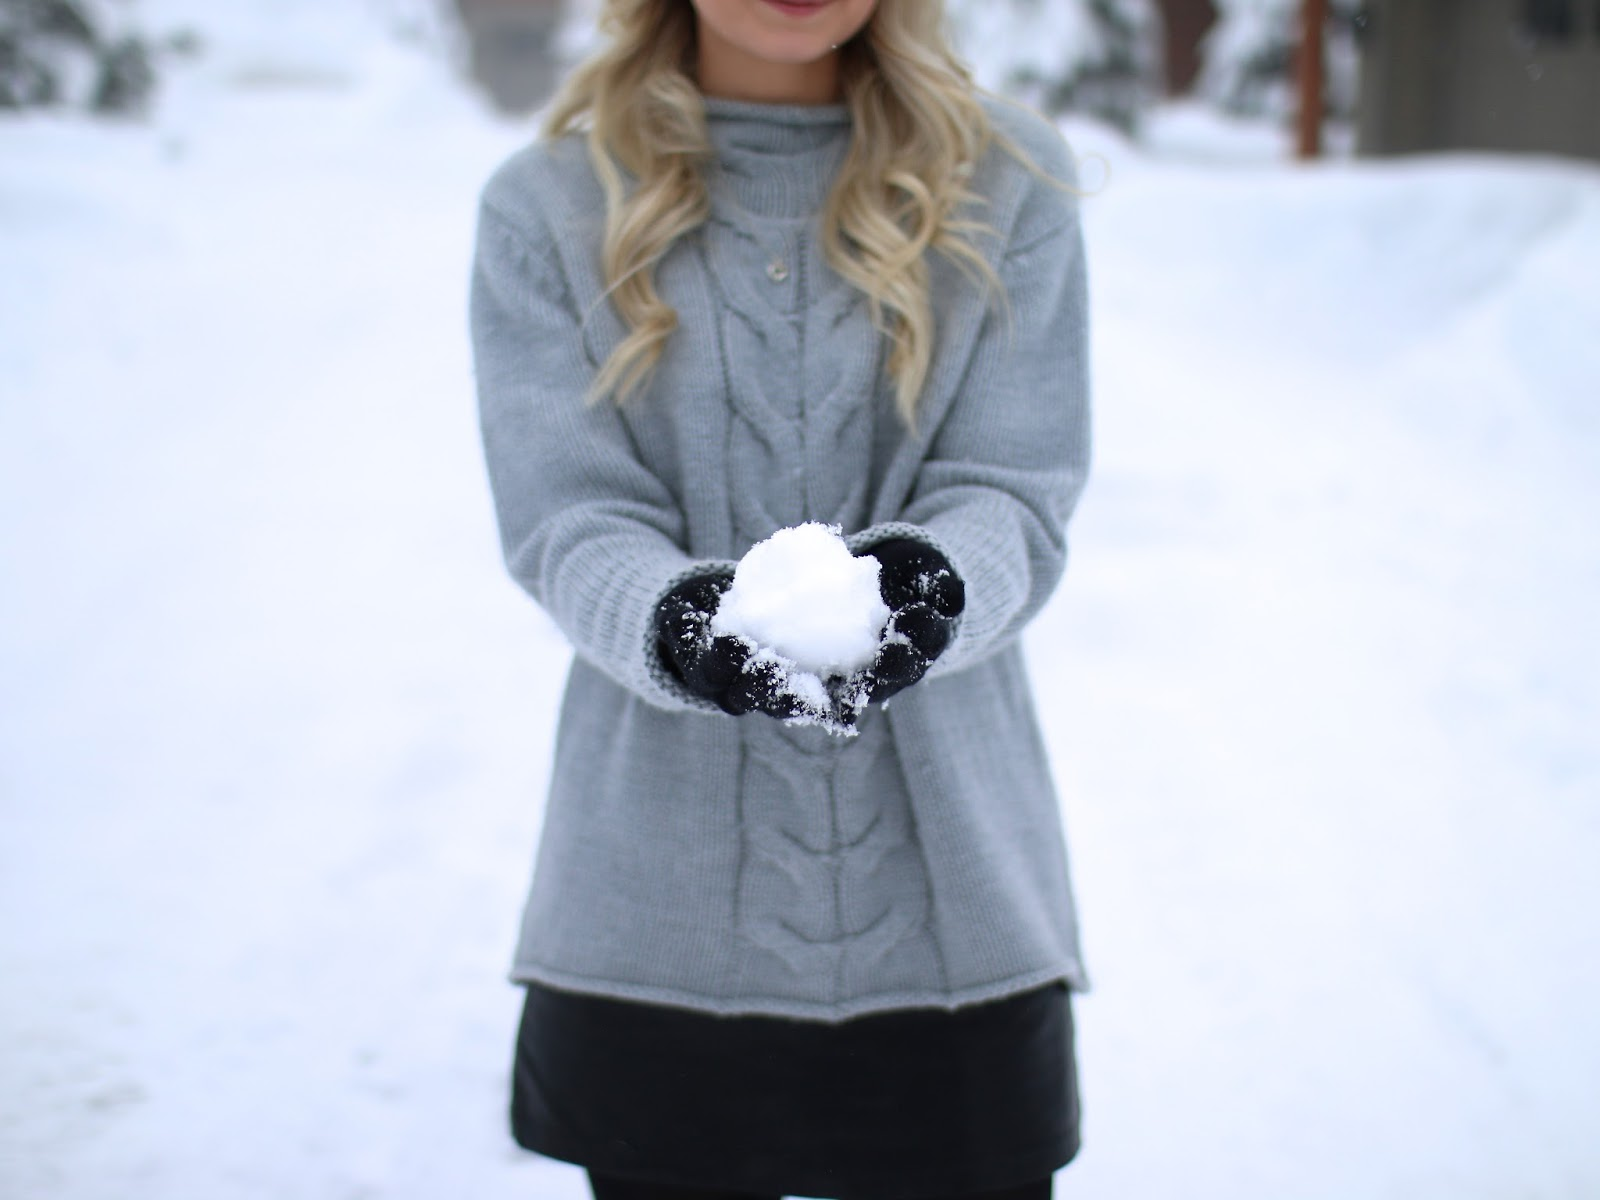 light a fluffy snow in whistler bc, snowball photography, snowball in hands